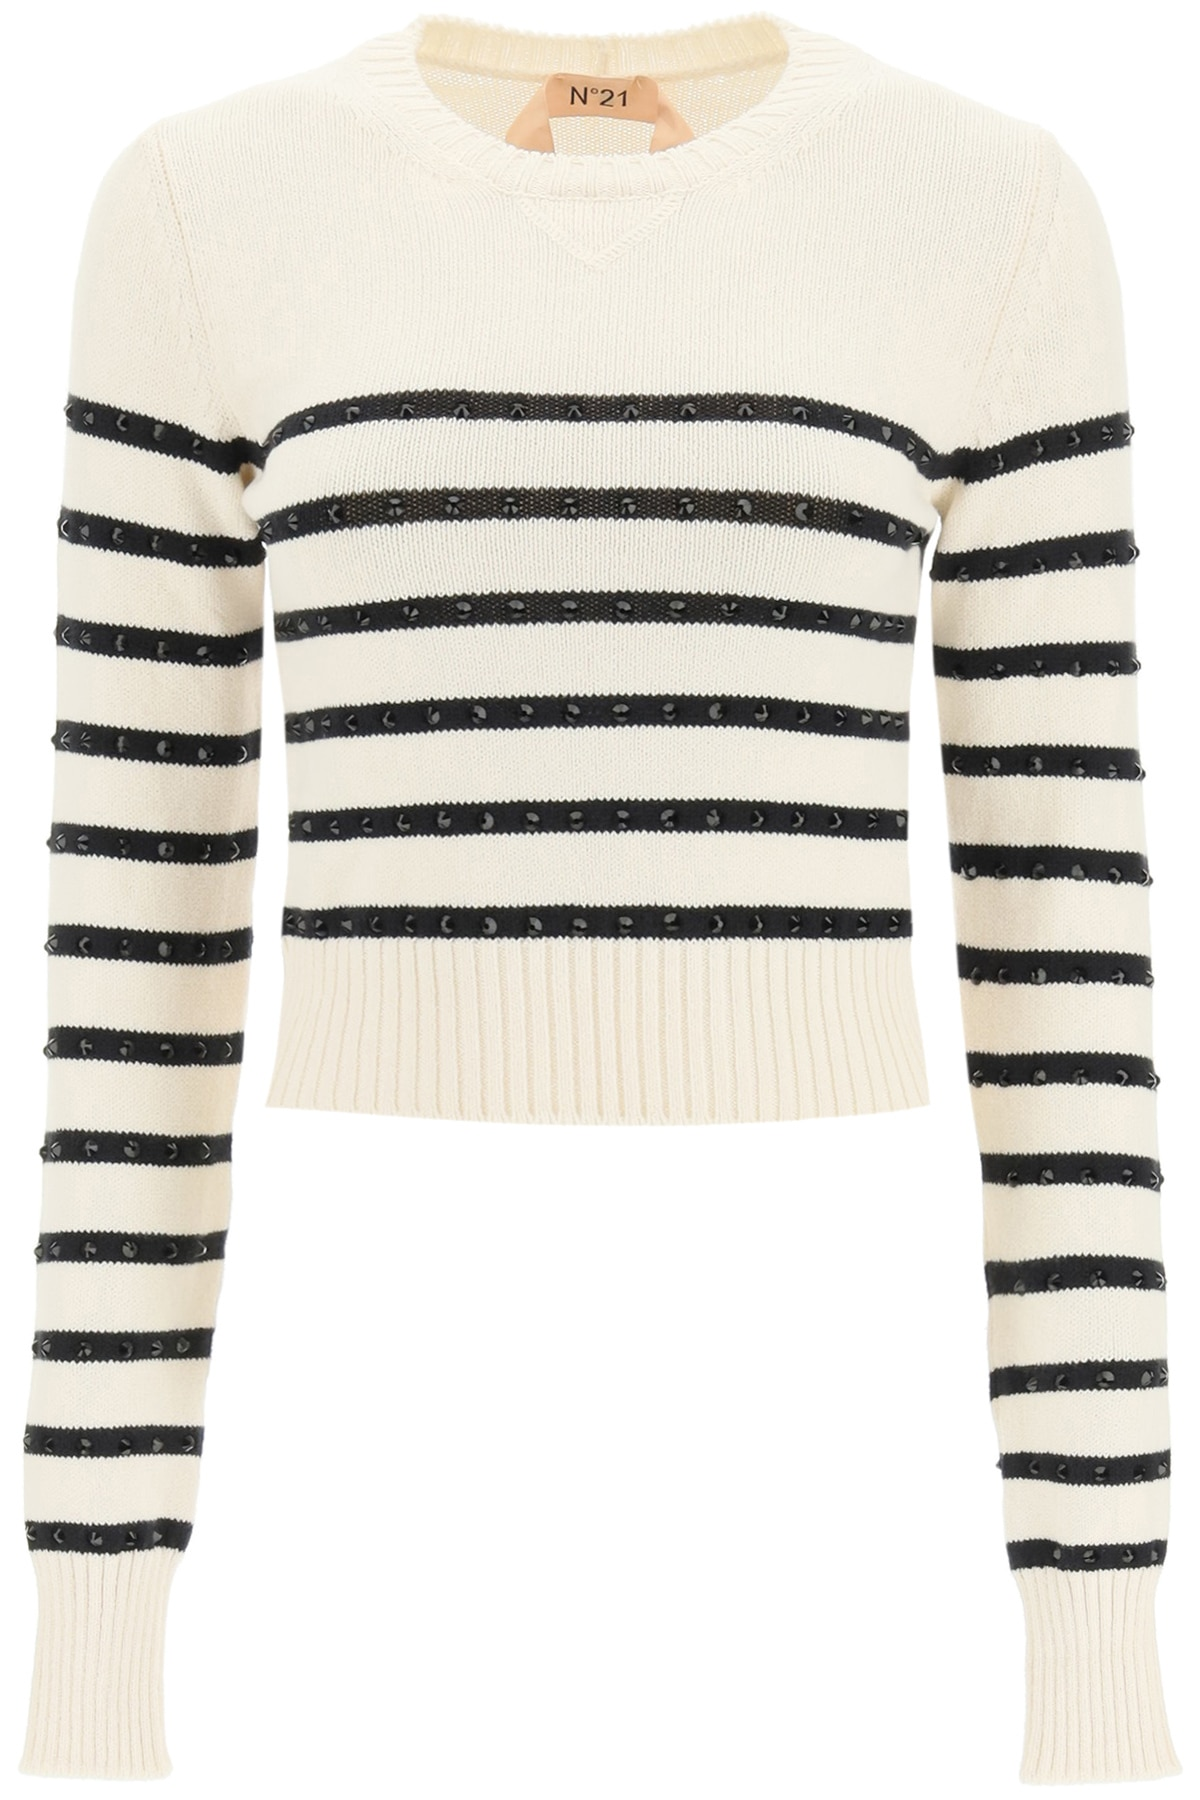 N°21 STRIPED SWEATER WITH CRYSTALS